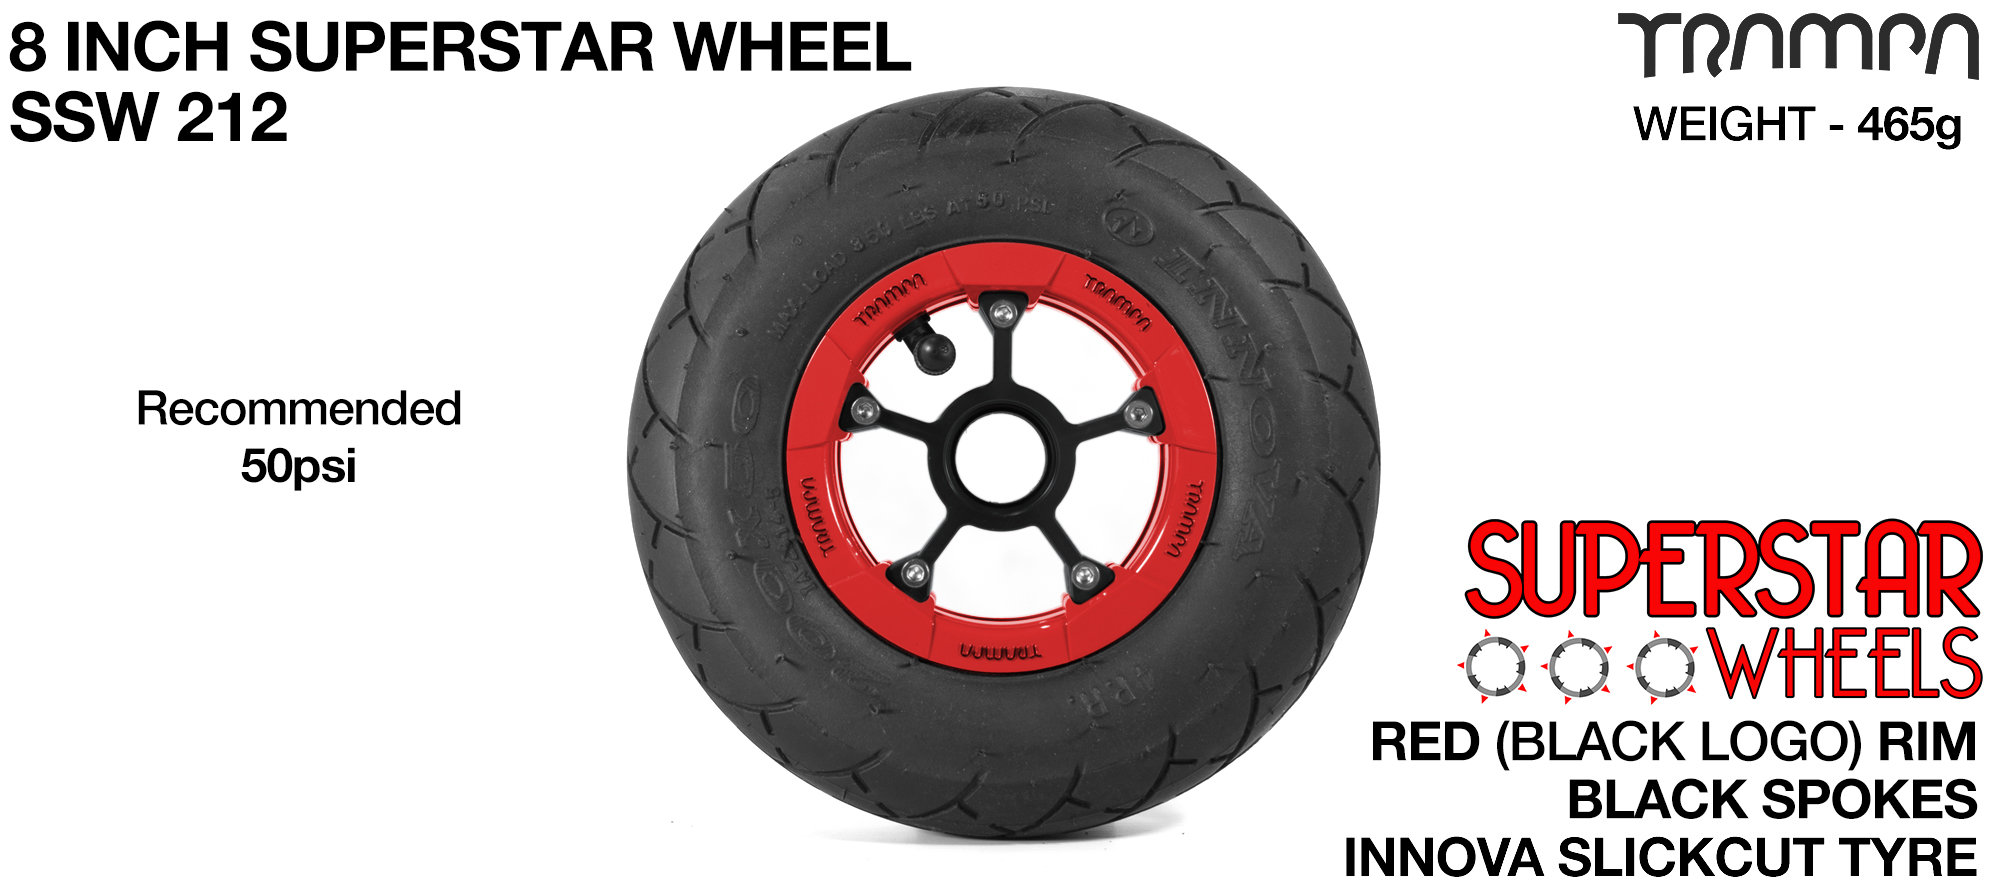 Superstar 8 inch wheel - Red Gloss Black Logo Superstar Rim with Black Anodised spokes & Grey INLINE 8 inch Tyre